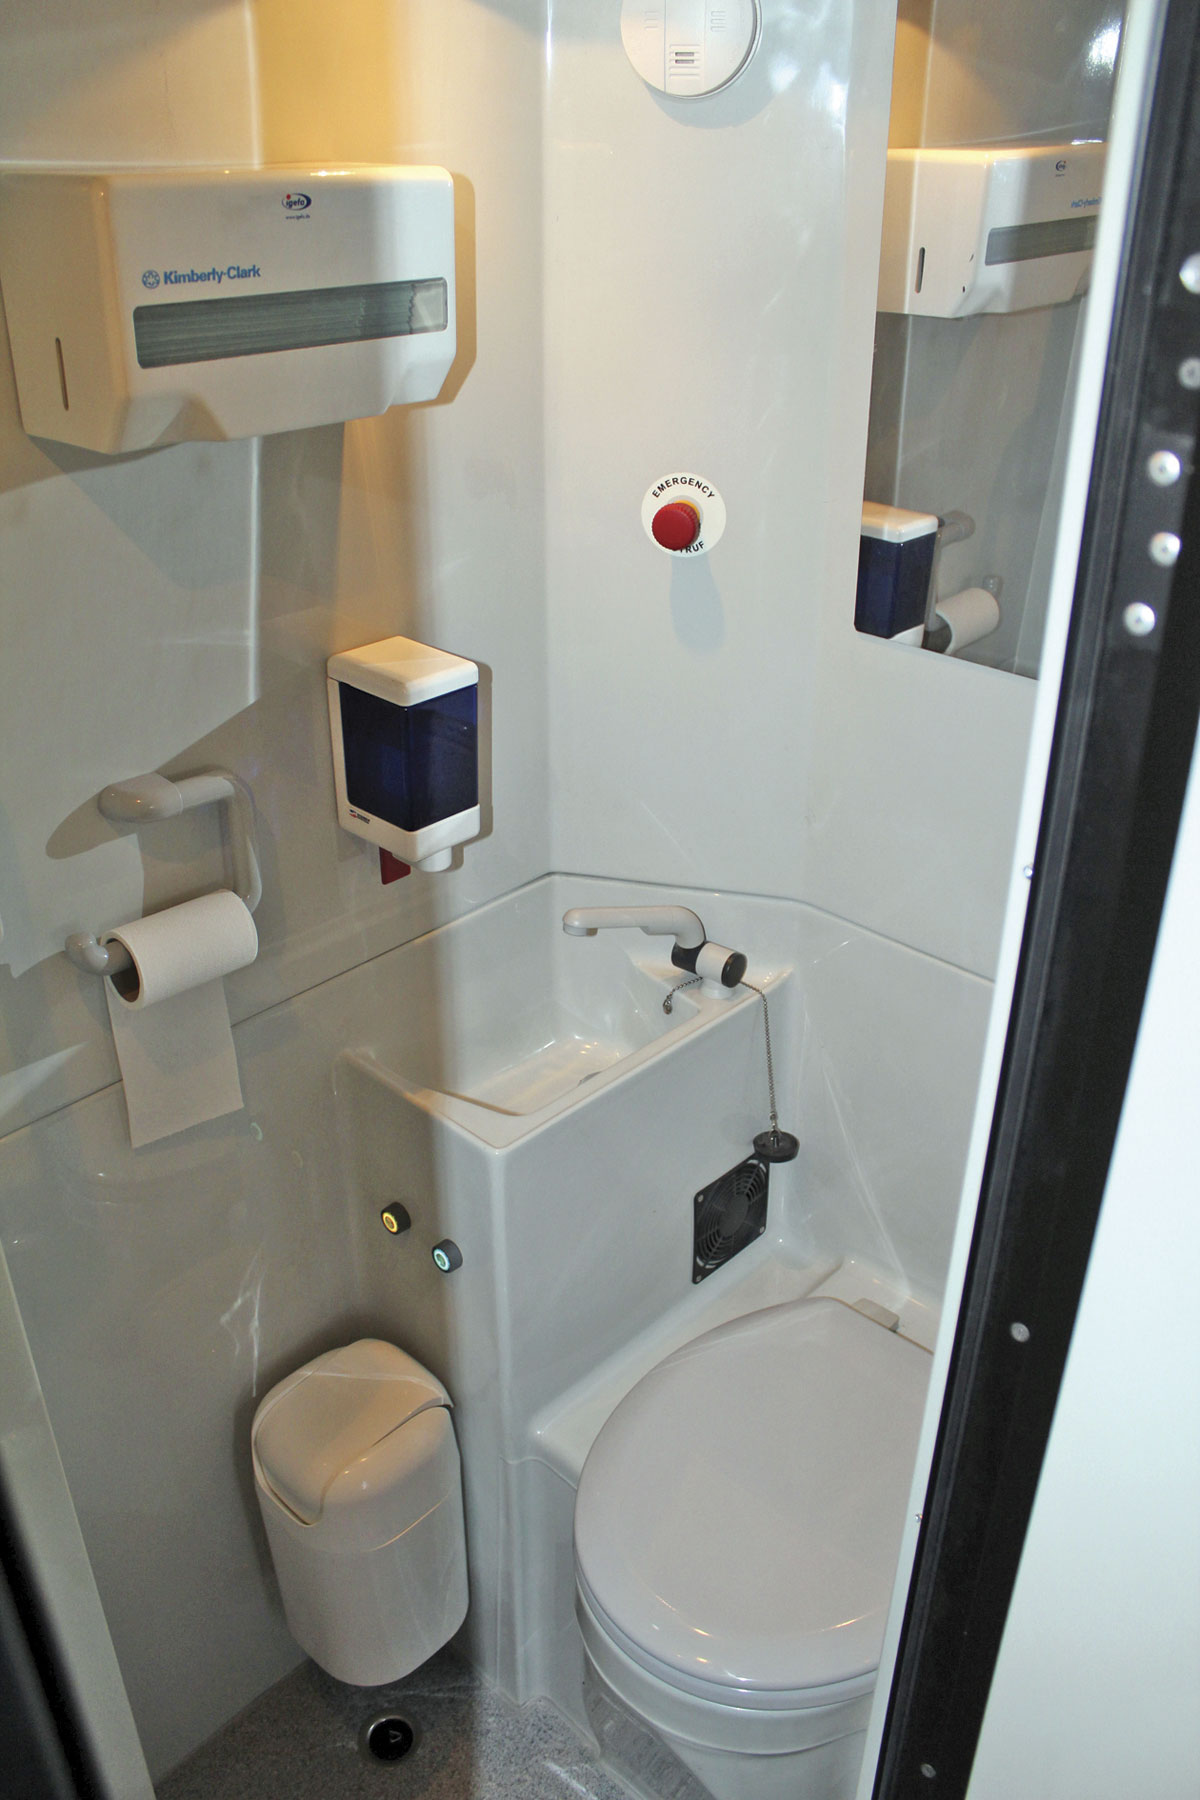 Changes have been made to the toilet compartment since it appeared in Birmingham and it is now an excellent unit.